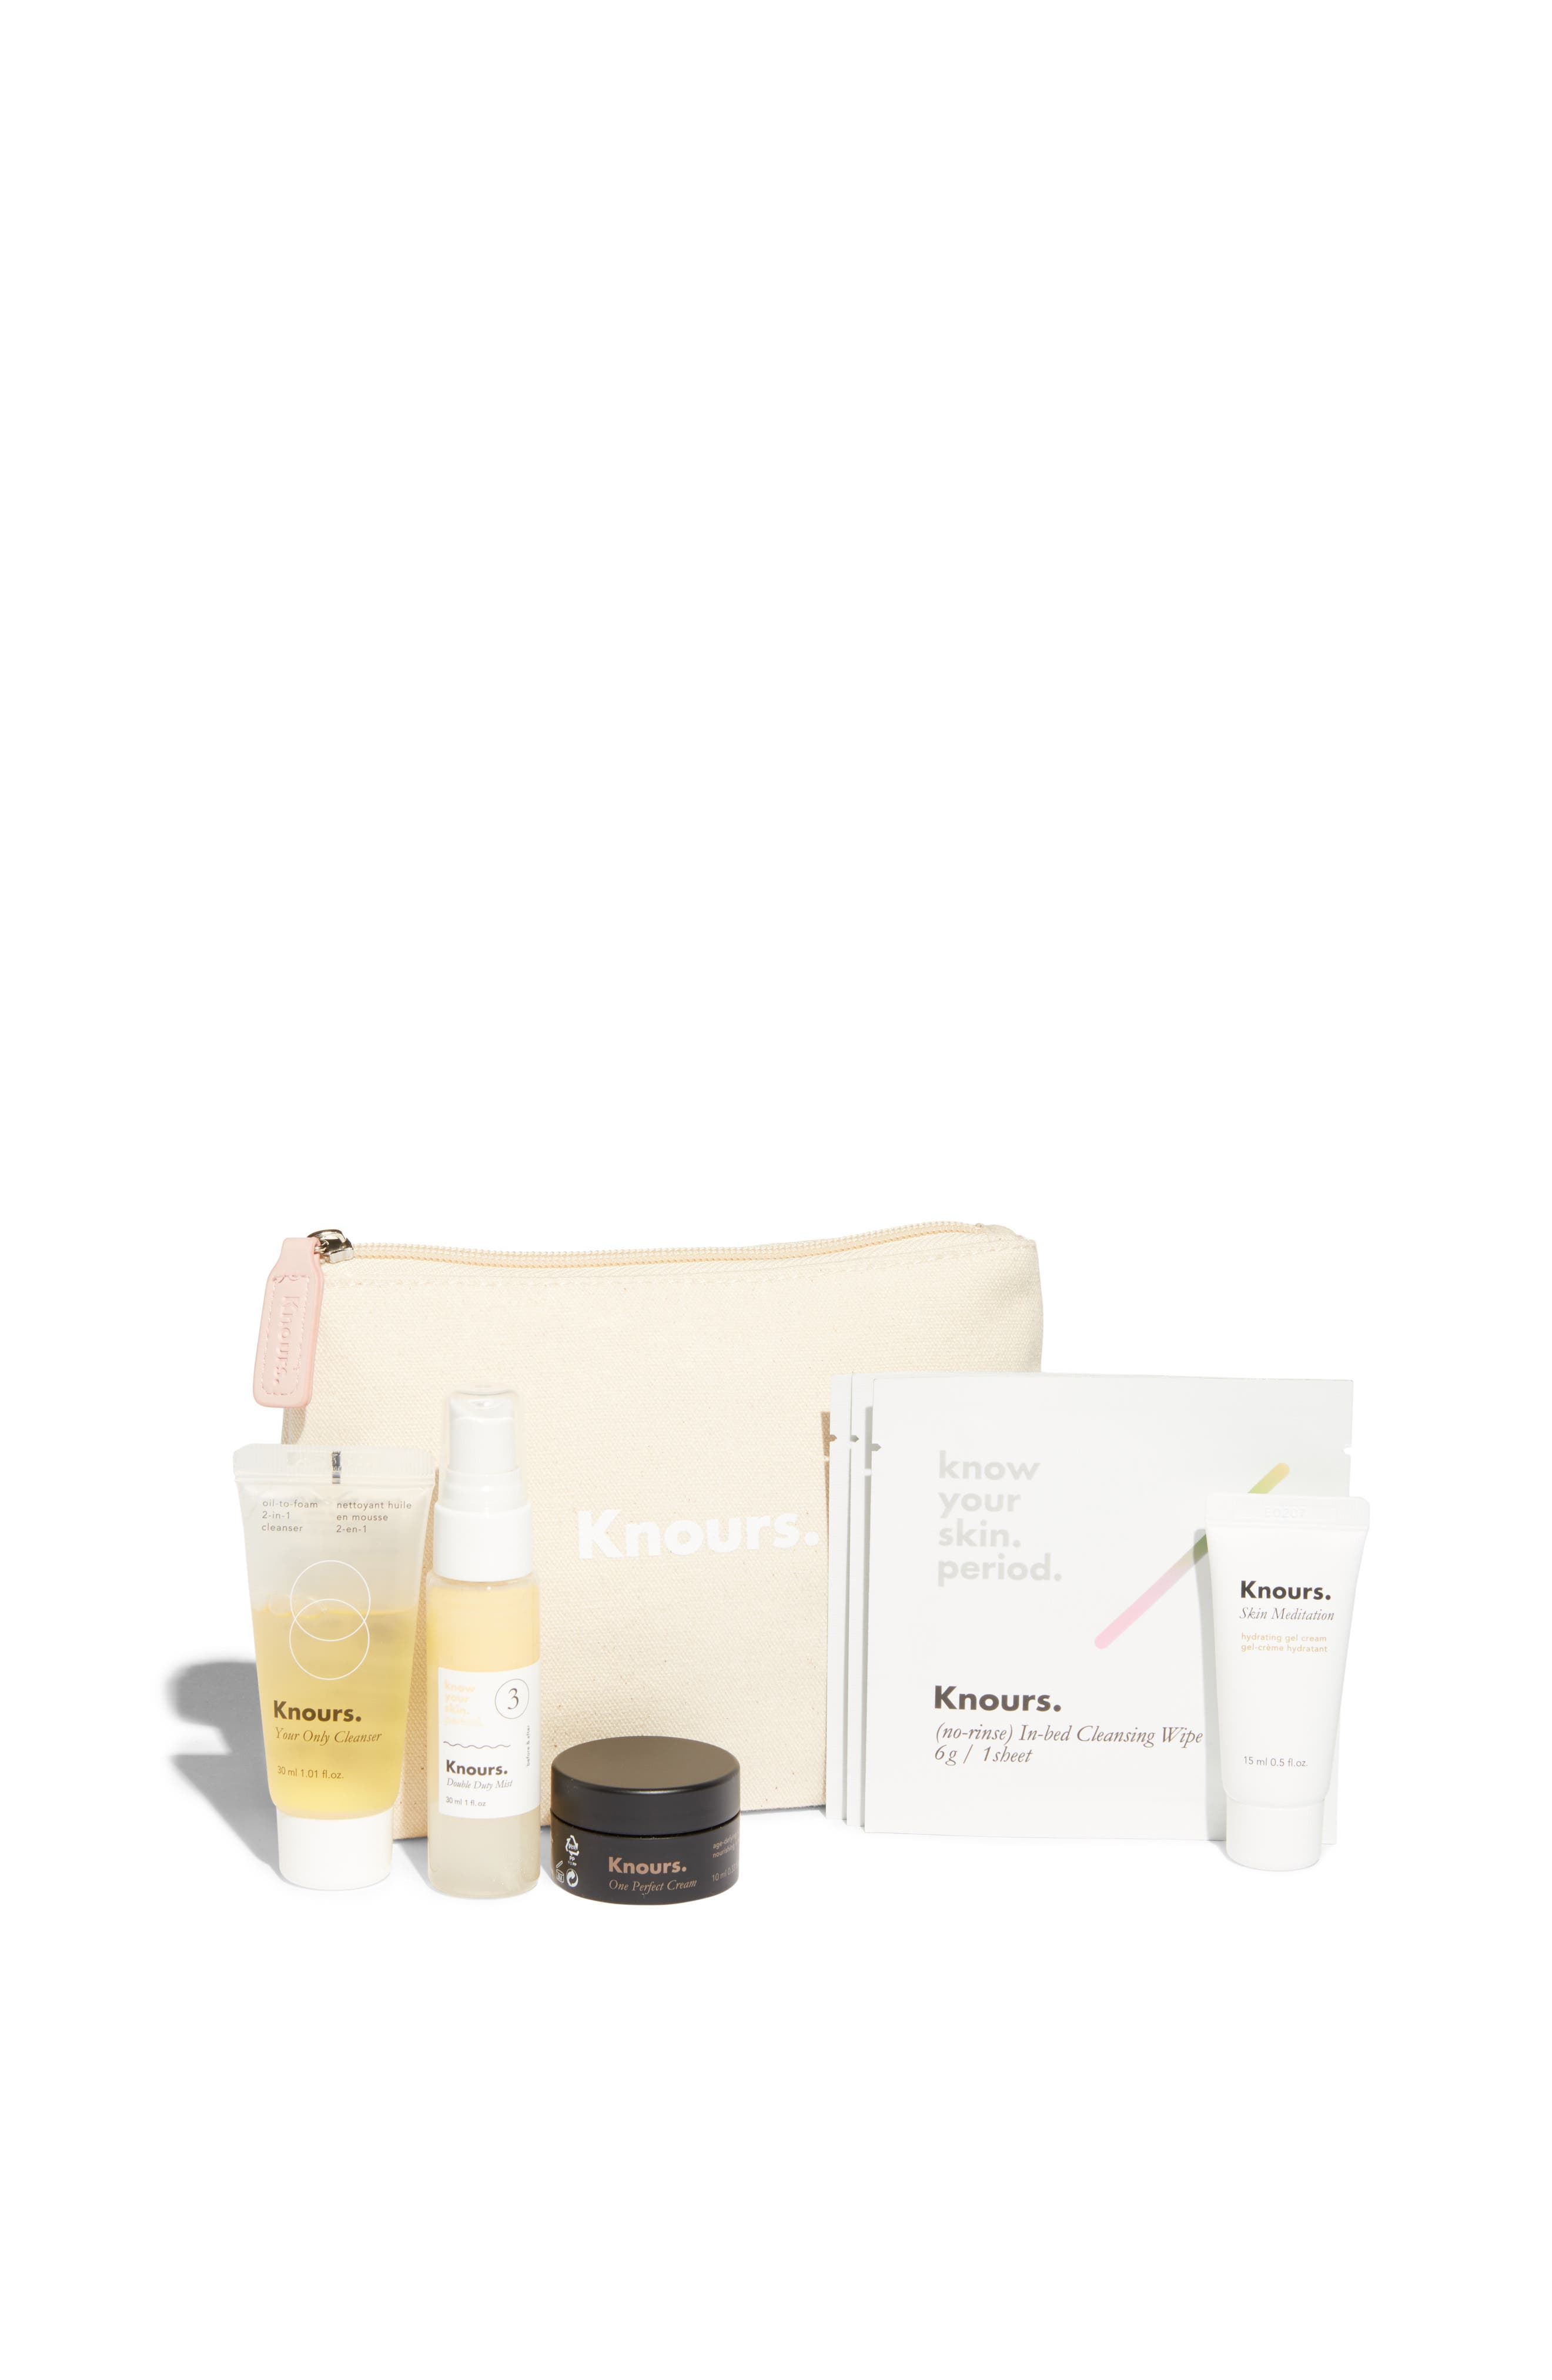 KNOURS Know Your Skin. Period. Skin Care Starter Kit, Main, color, 650